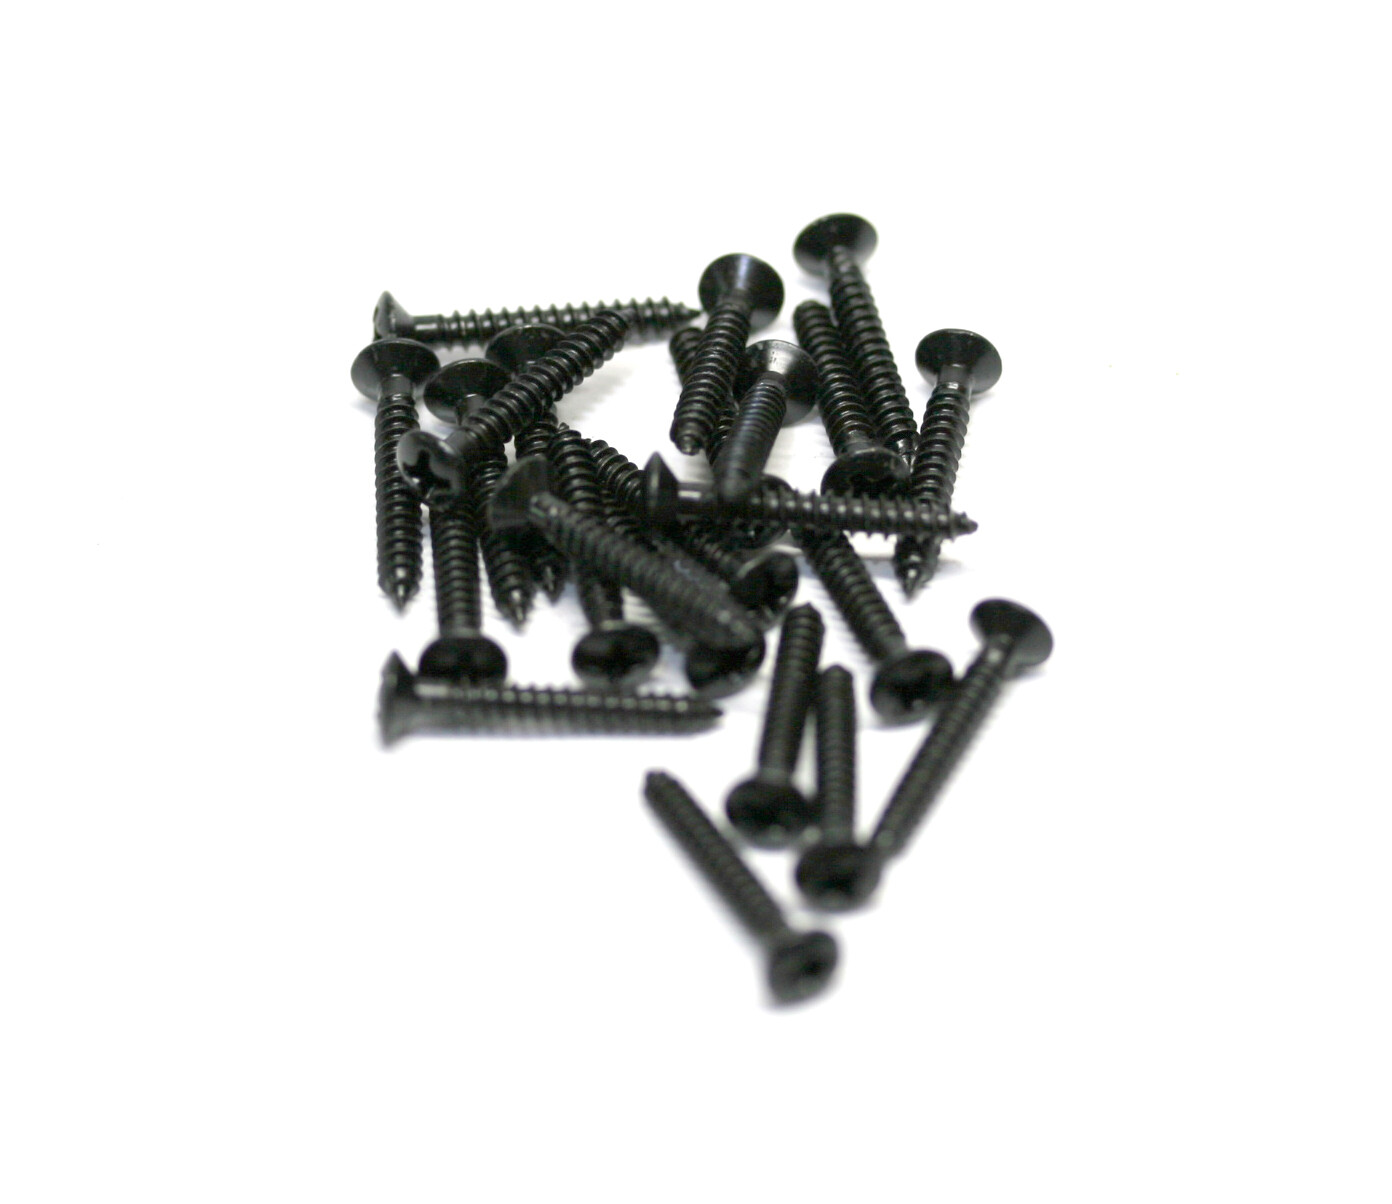 Brio 10 Pack Bridge Mounting Screws 3mmD 22mm L BLACK